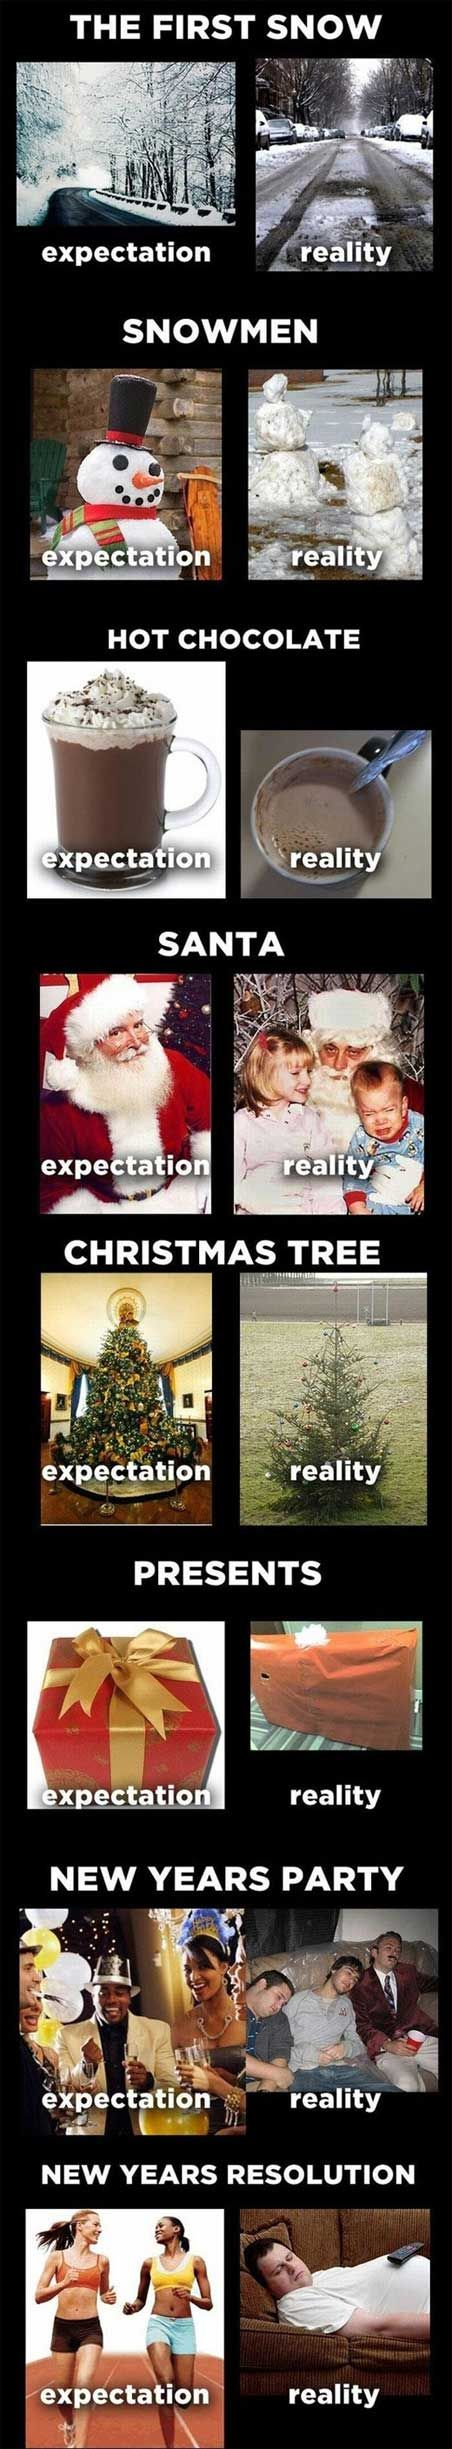 Holiday Expectations vs. Realities-very true! (Especially the gift wrapping one)